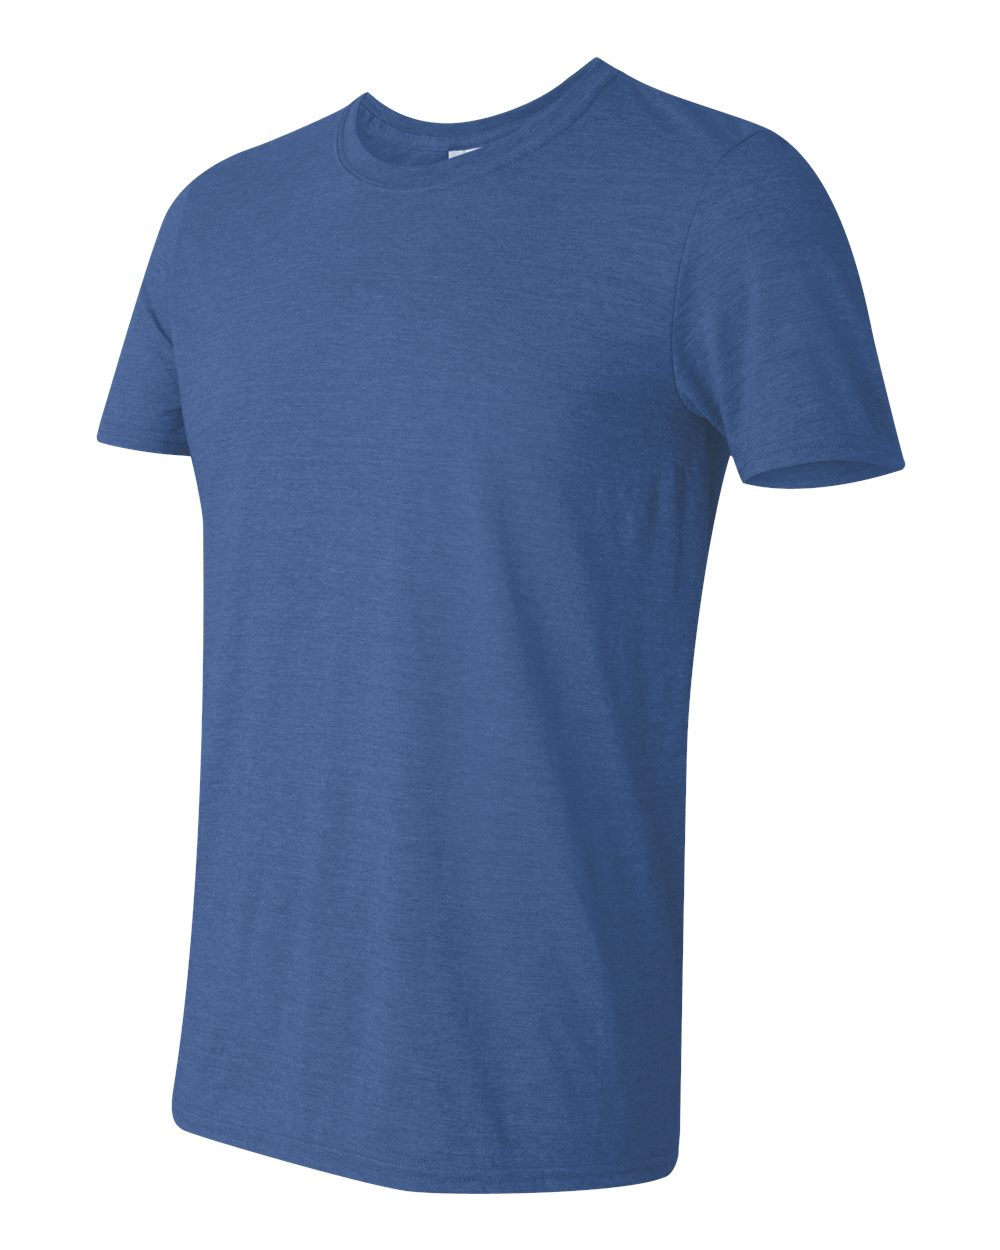 GILDAN ADULT SOFTSTYLE T-SHIRT SIZES S-3XL 55 COLORS TO ...